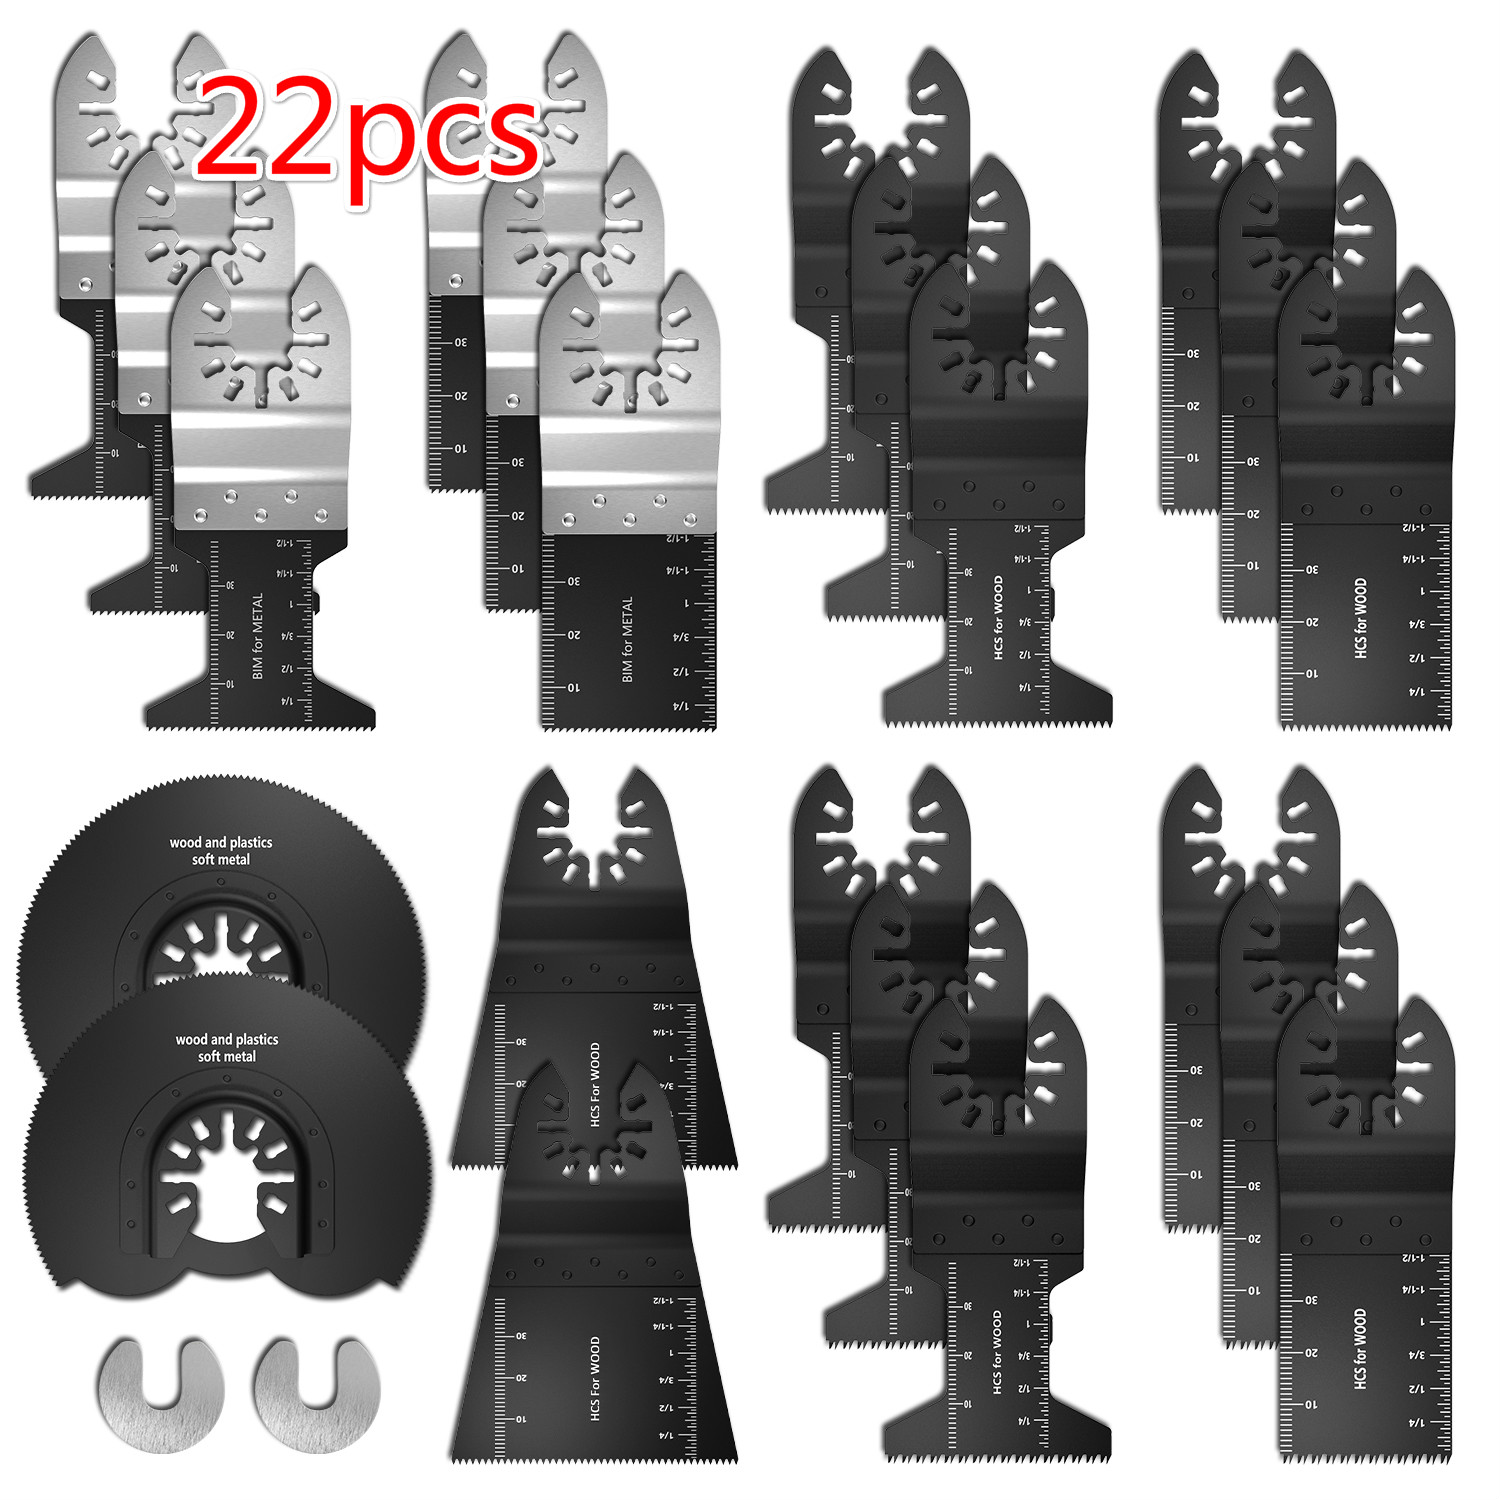 22pcs Oscillating Multi Tool Saw Blade Kit High Carbon Steel Wood Cutting WoodWorking Blades Accessories For Plastic